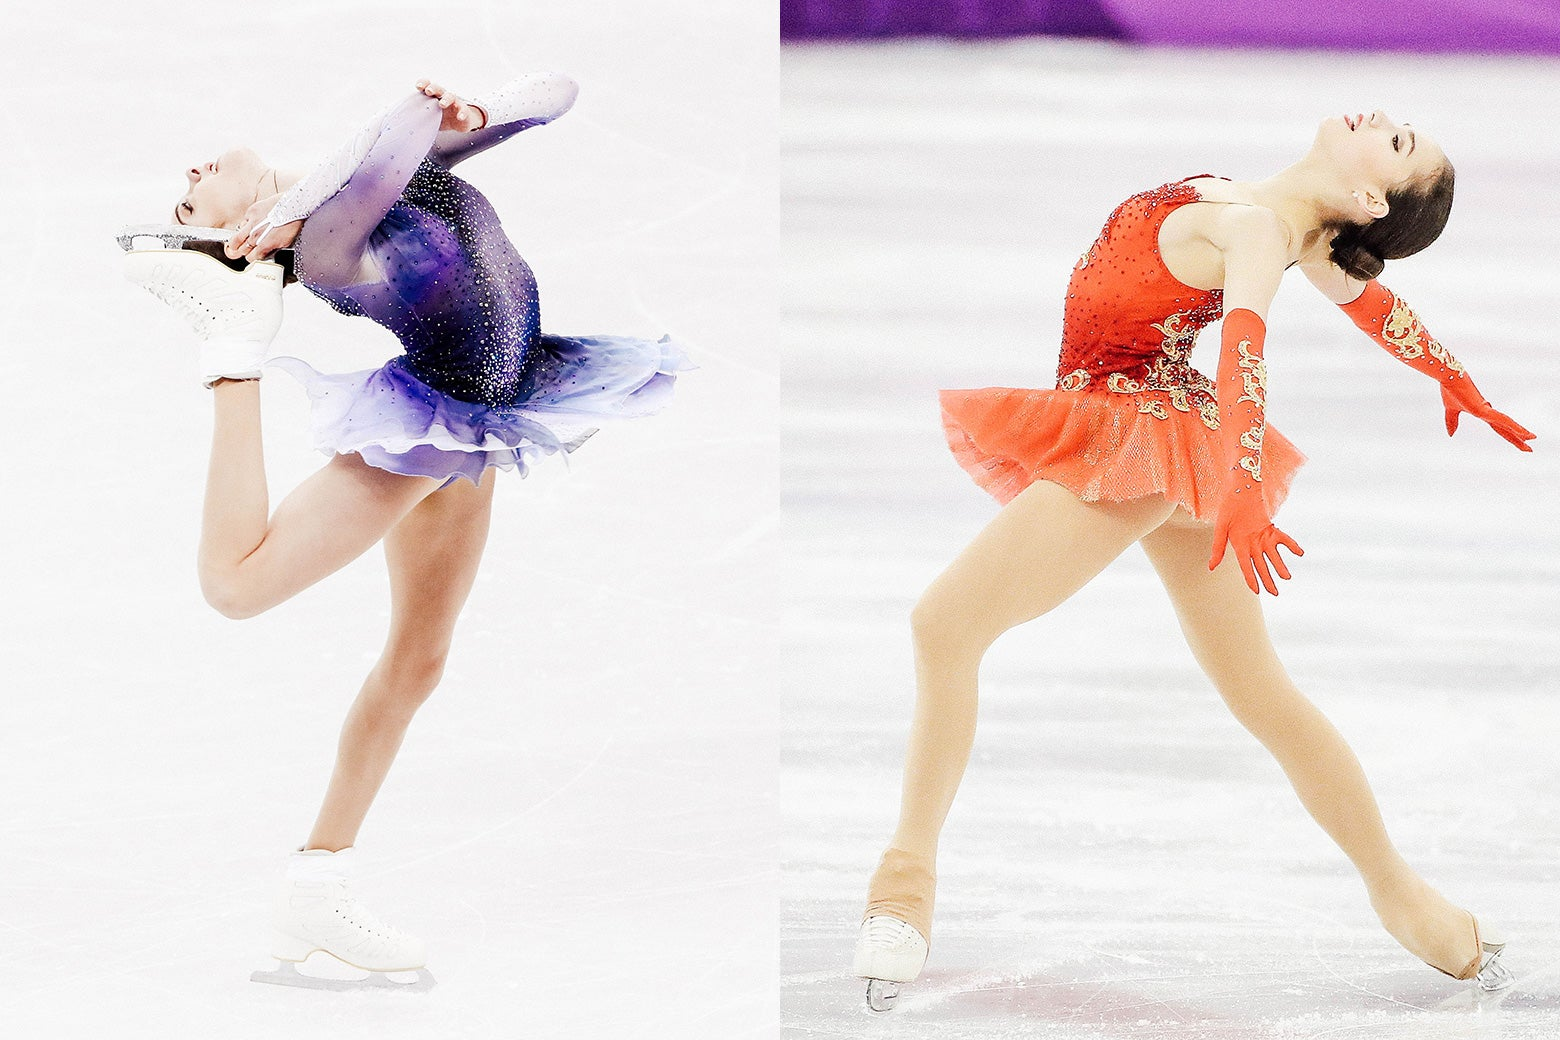 Side-by-side: Olympic skaters Evgenia Medvedeva and Alina Zagitova compete at the Pyeongchang Olympics.